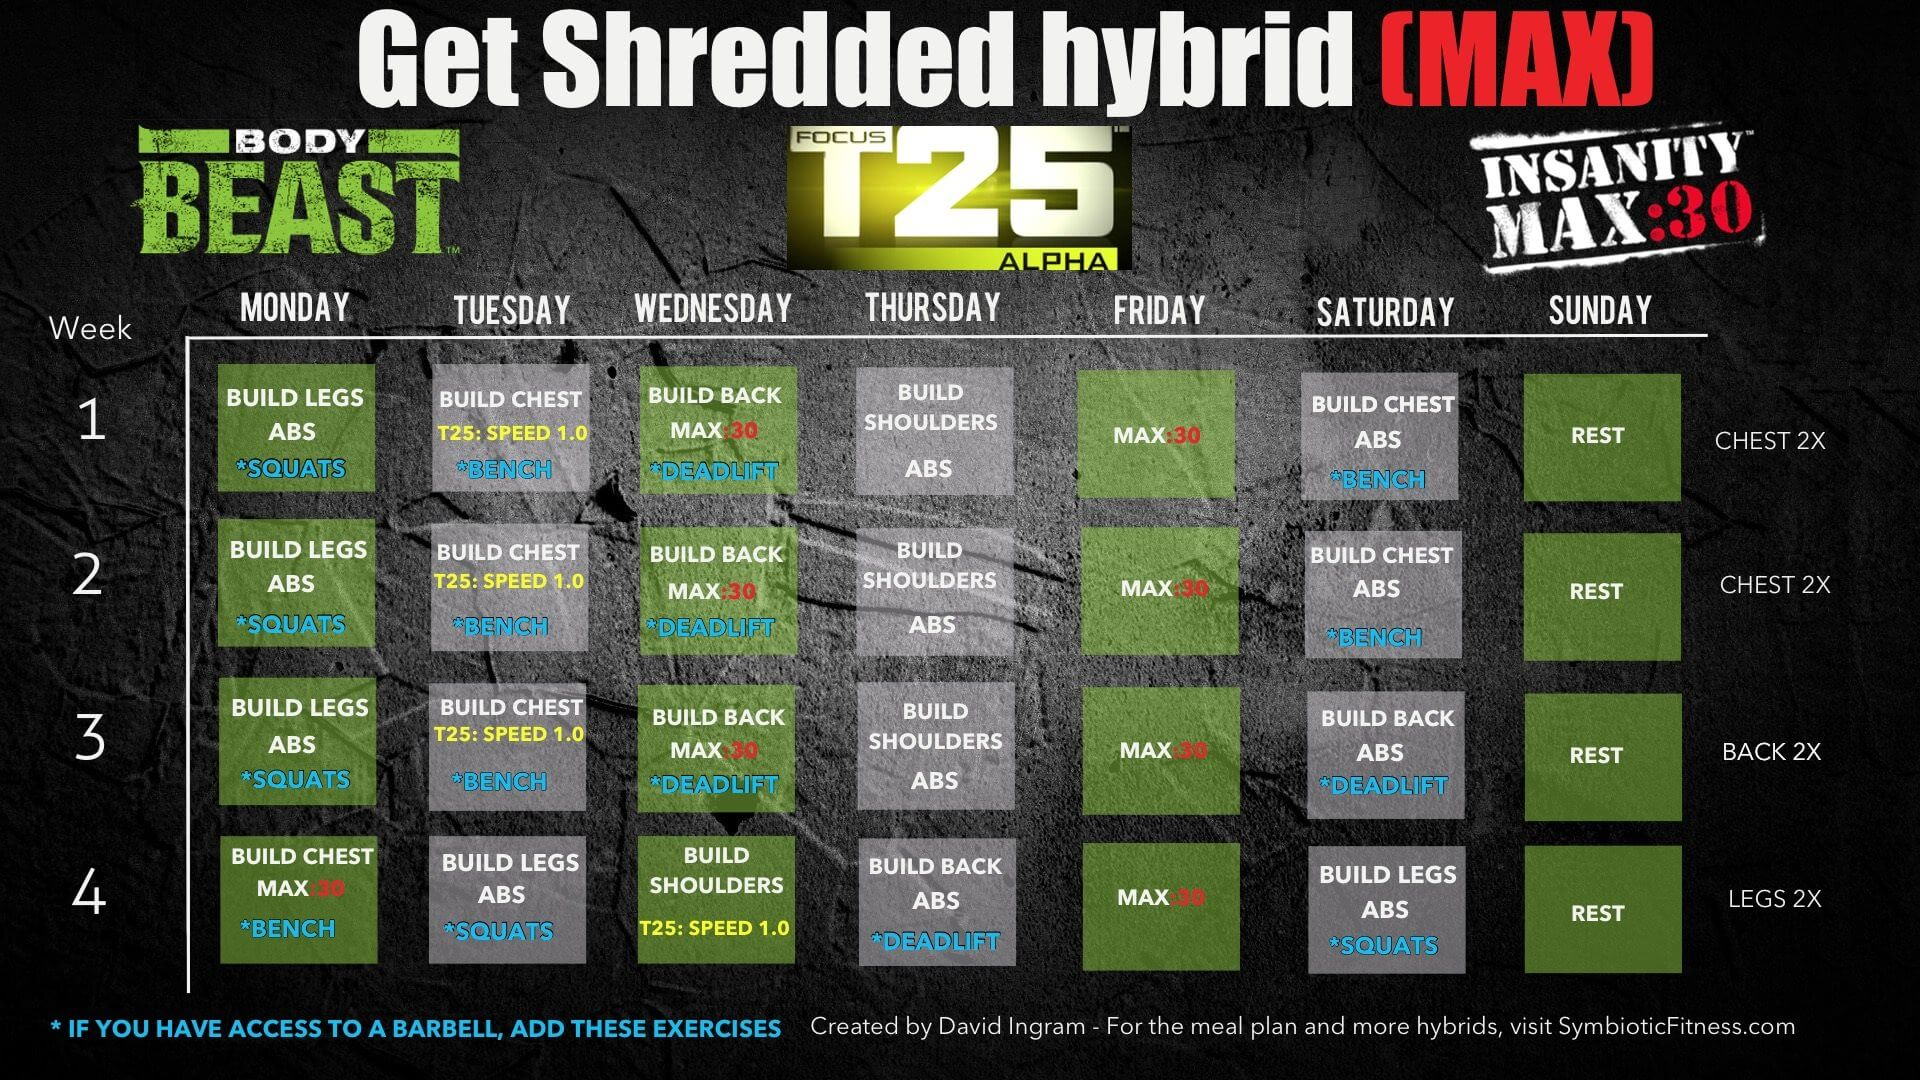 Bodybeast Hybrid With Insanity Max 30 And T25  Get Shredded with regard to Body Beast Max 30 Hybrid